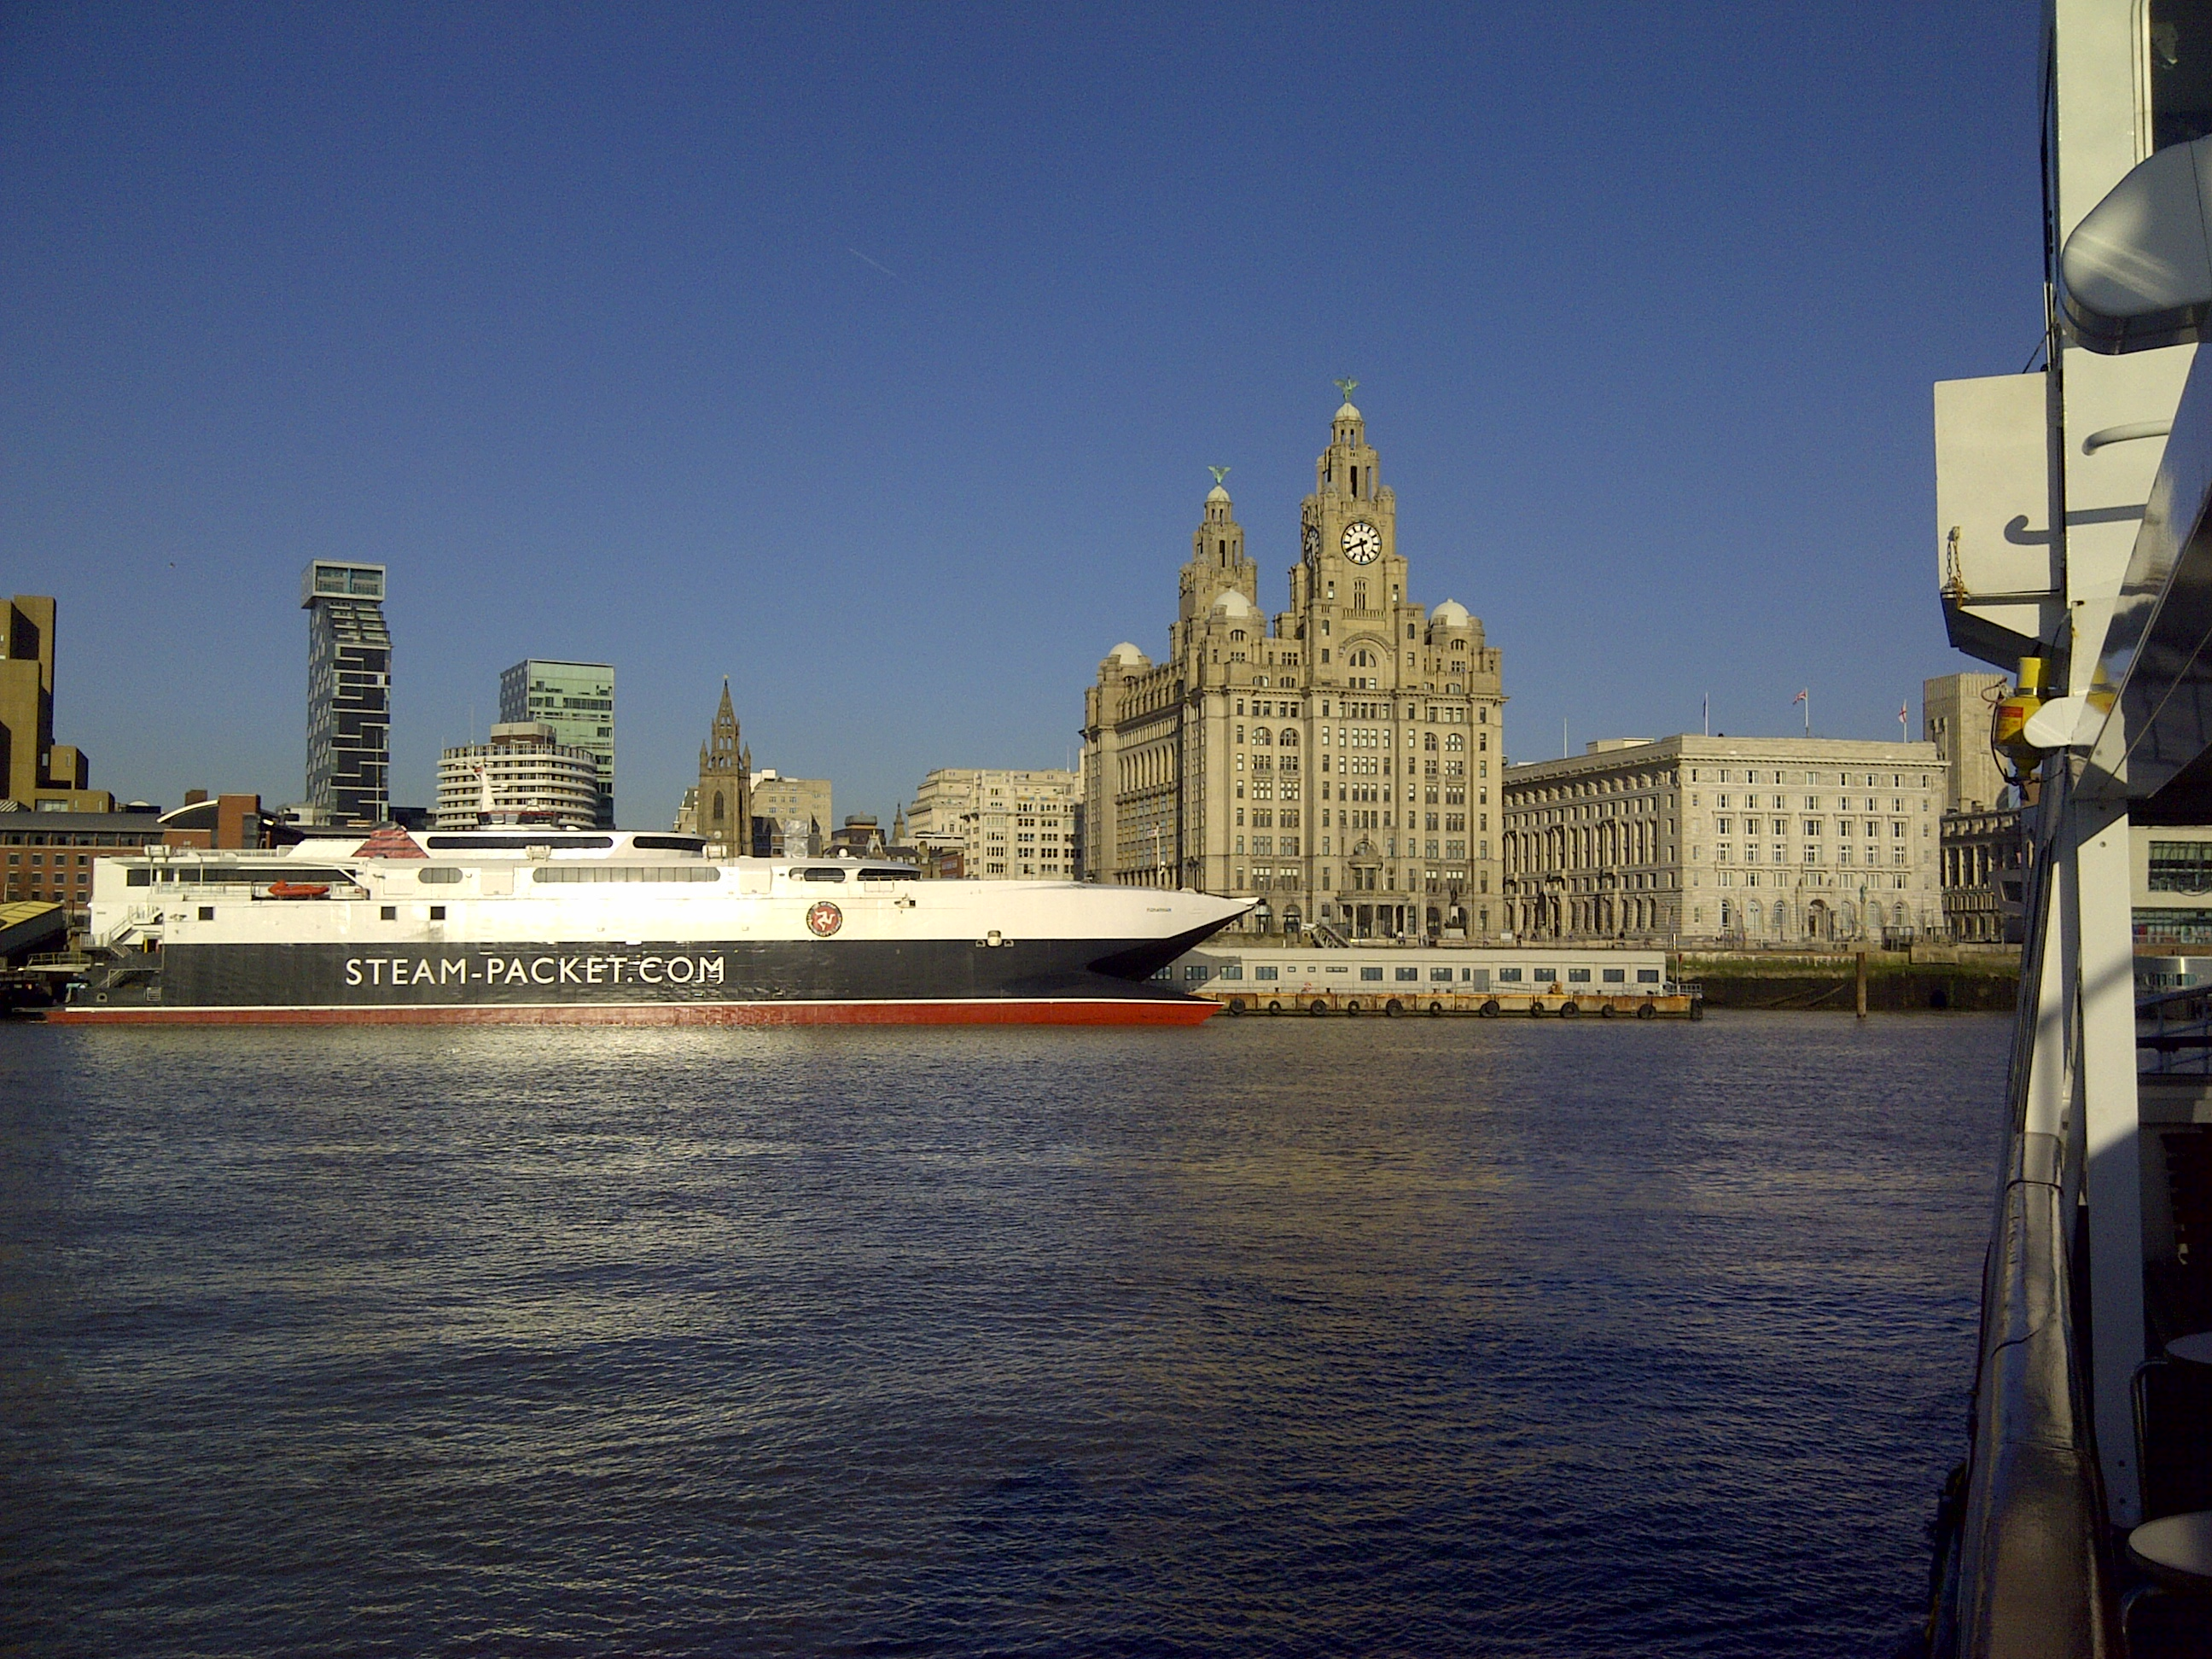 Liverpool's Pier Head with the Isle of Man 'Sea Cat' ferry moored alongside.